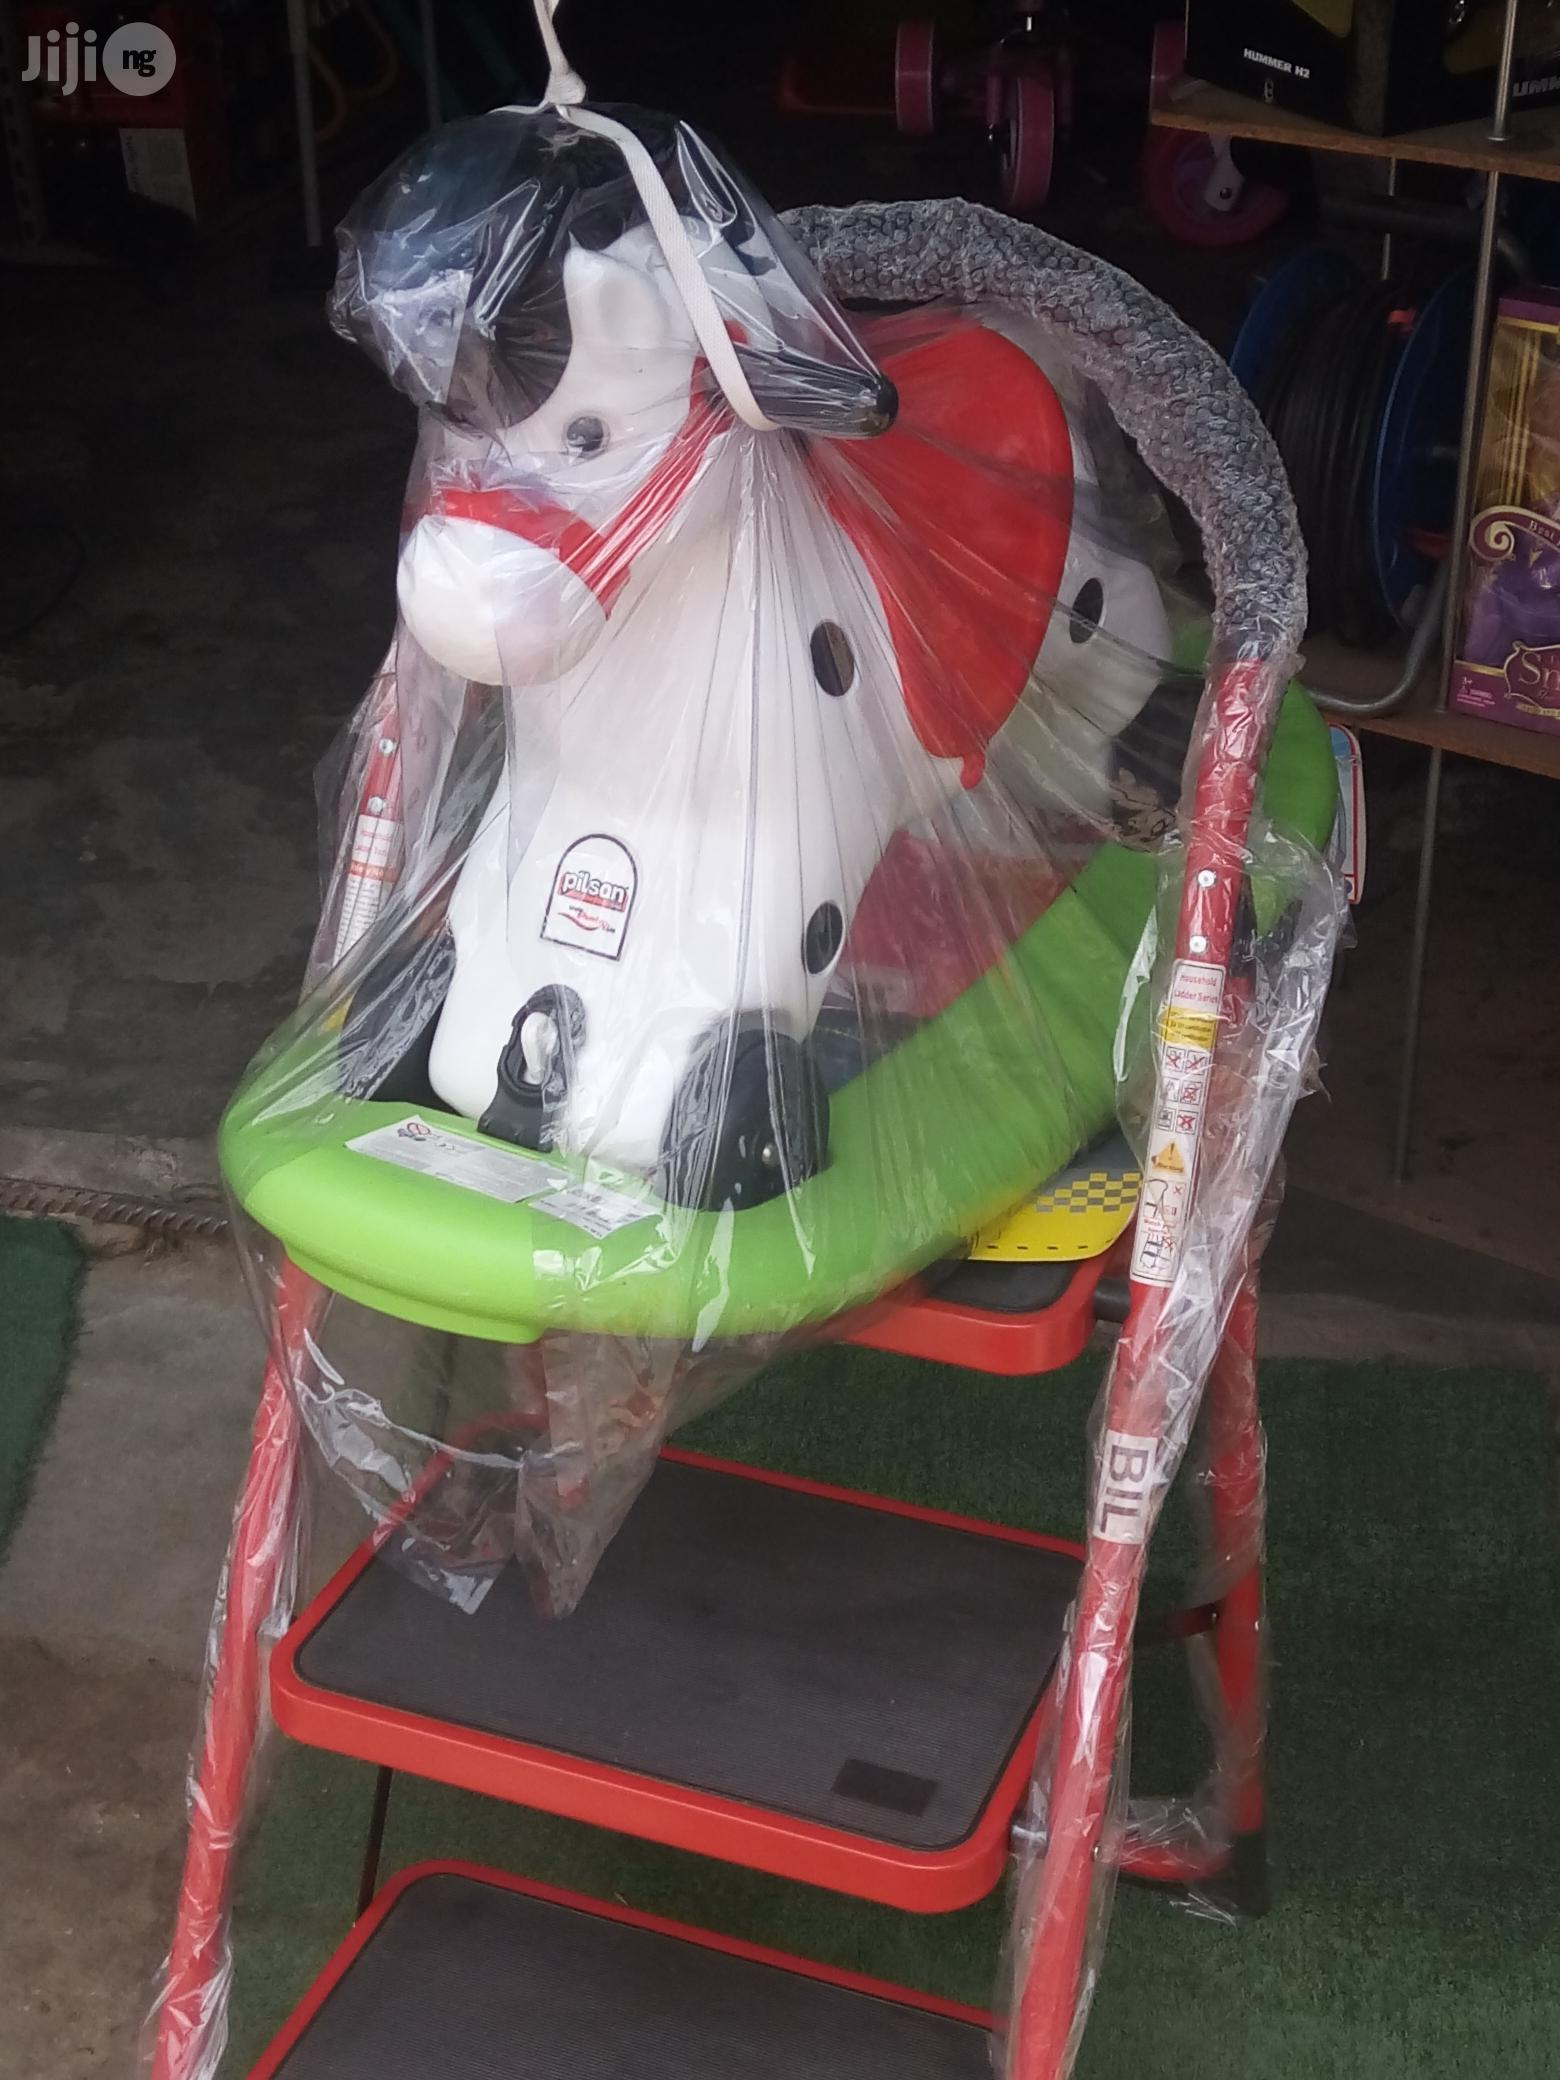 Buy Your Kids Detachable Horse Rocker In Lagos State Children S Gear Safety Grineria Store Jiji Ng